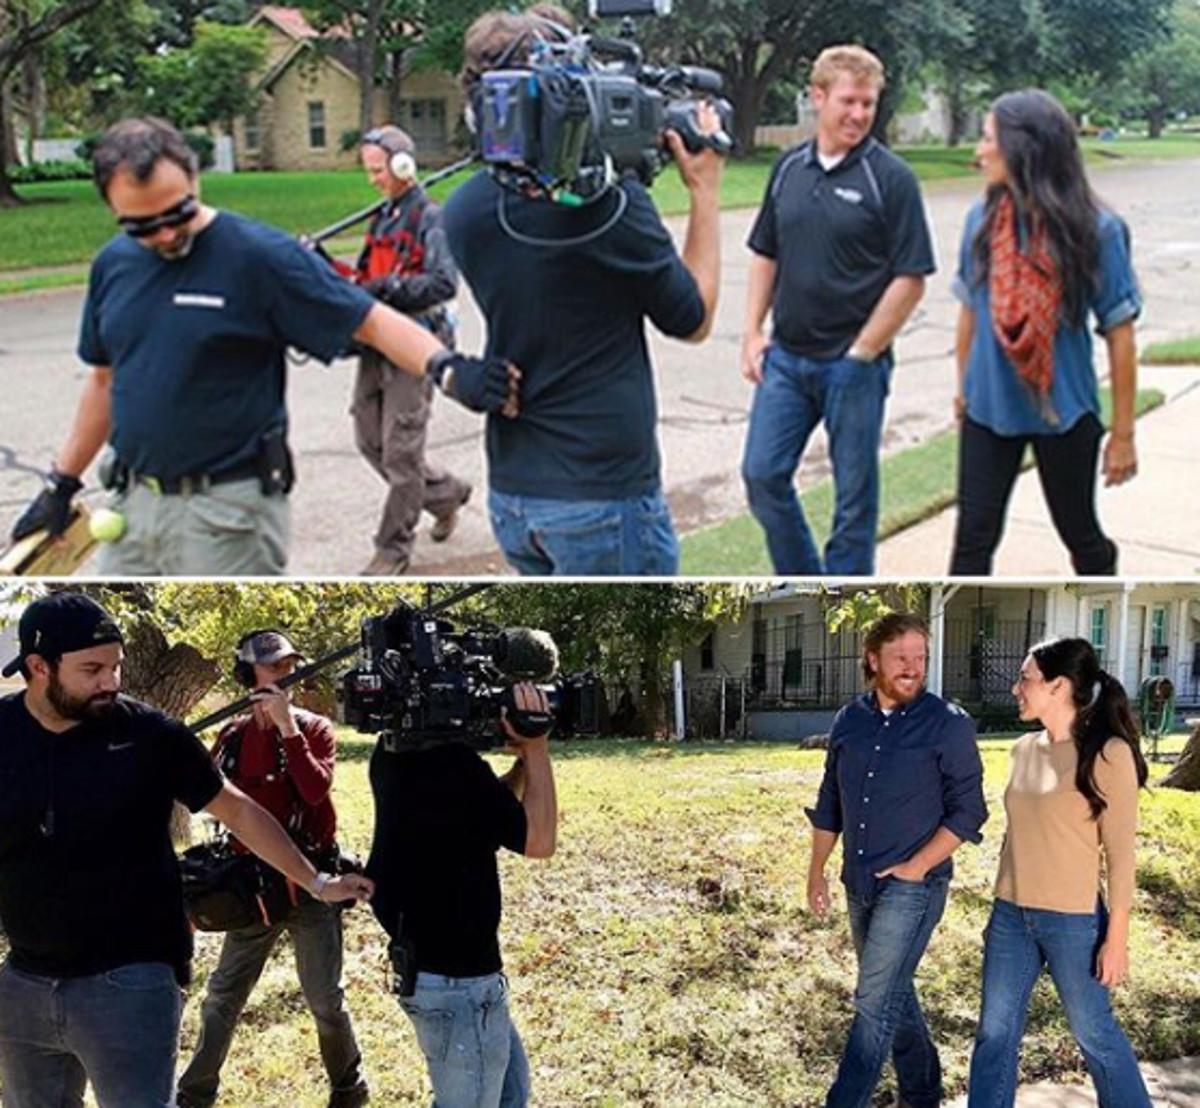 Fixer Upper Season 5 Episode 2 Molding: 'Fixer Upper' Ended Last Night. Here's What Happened In